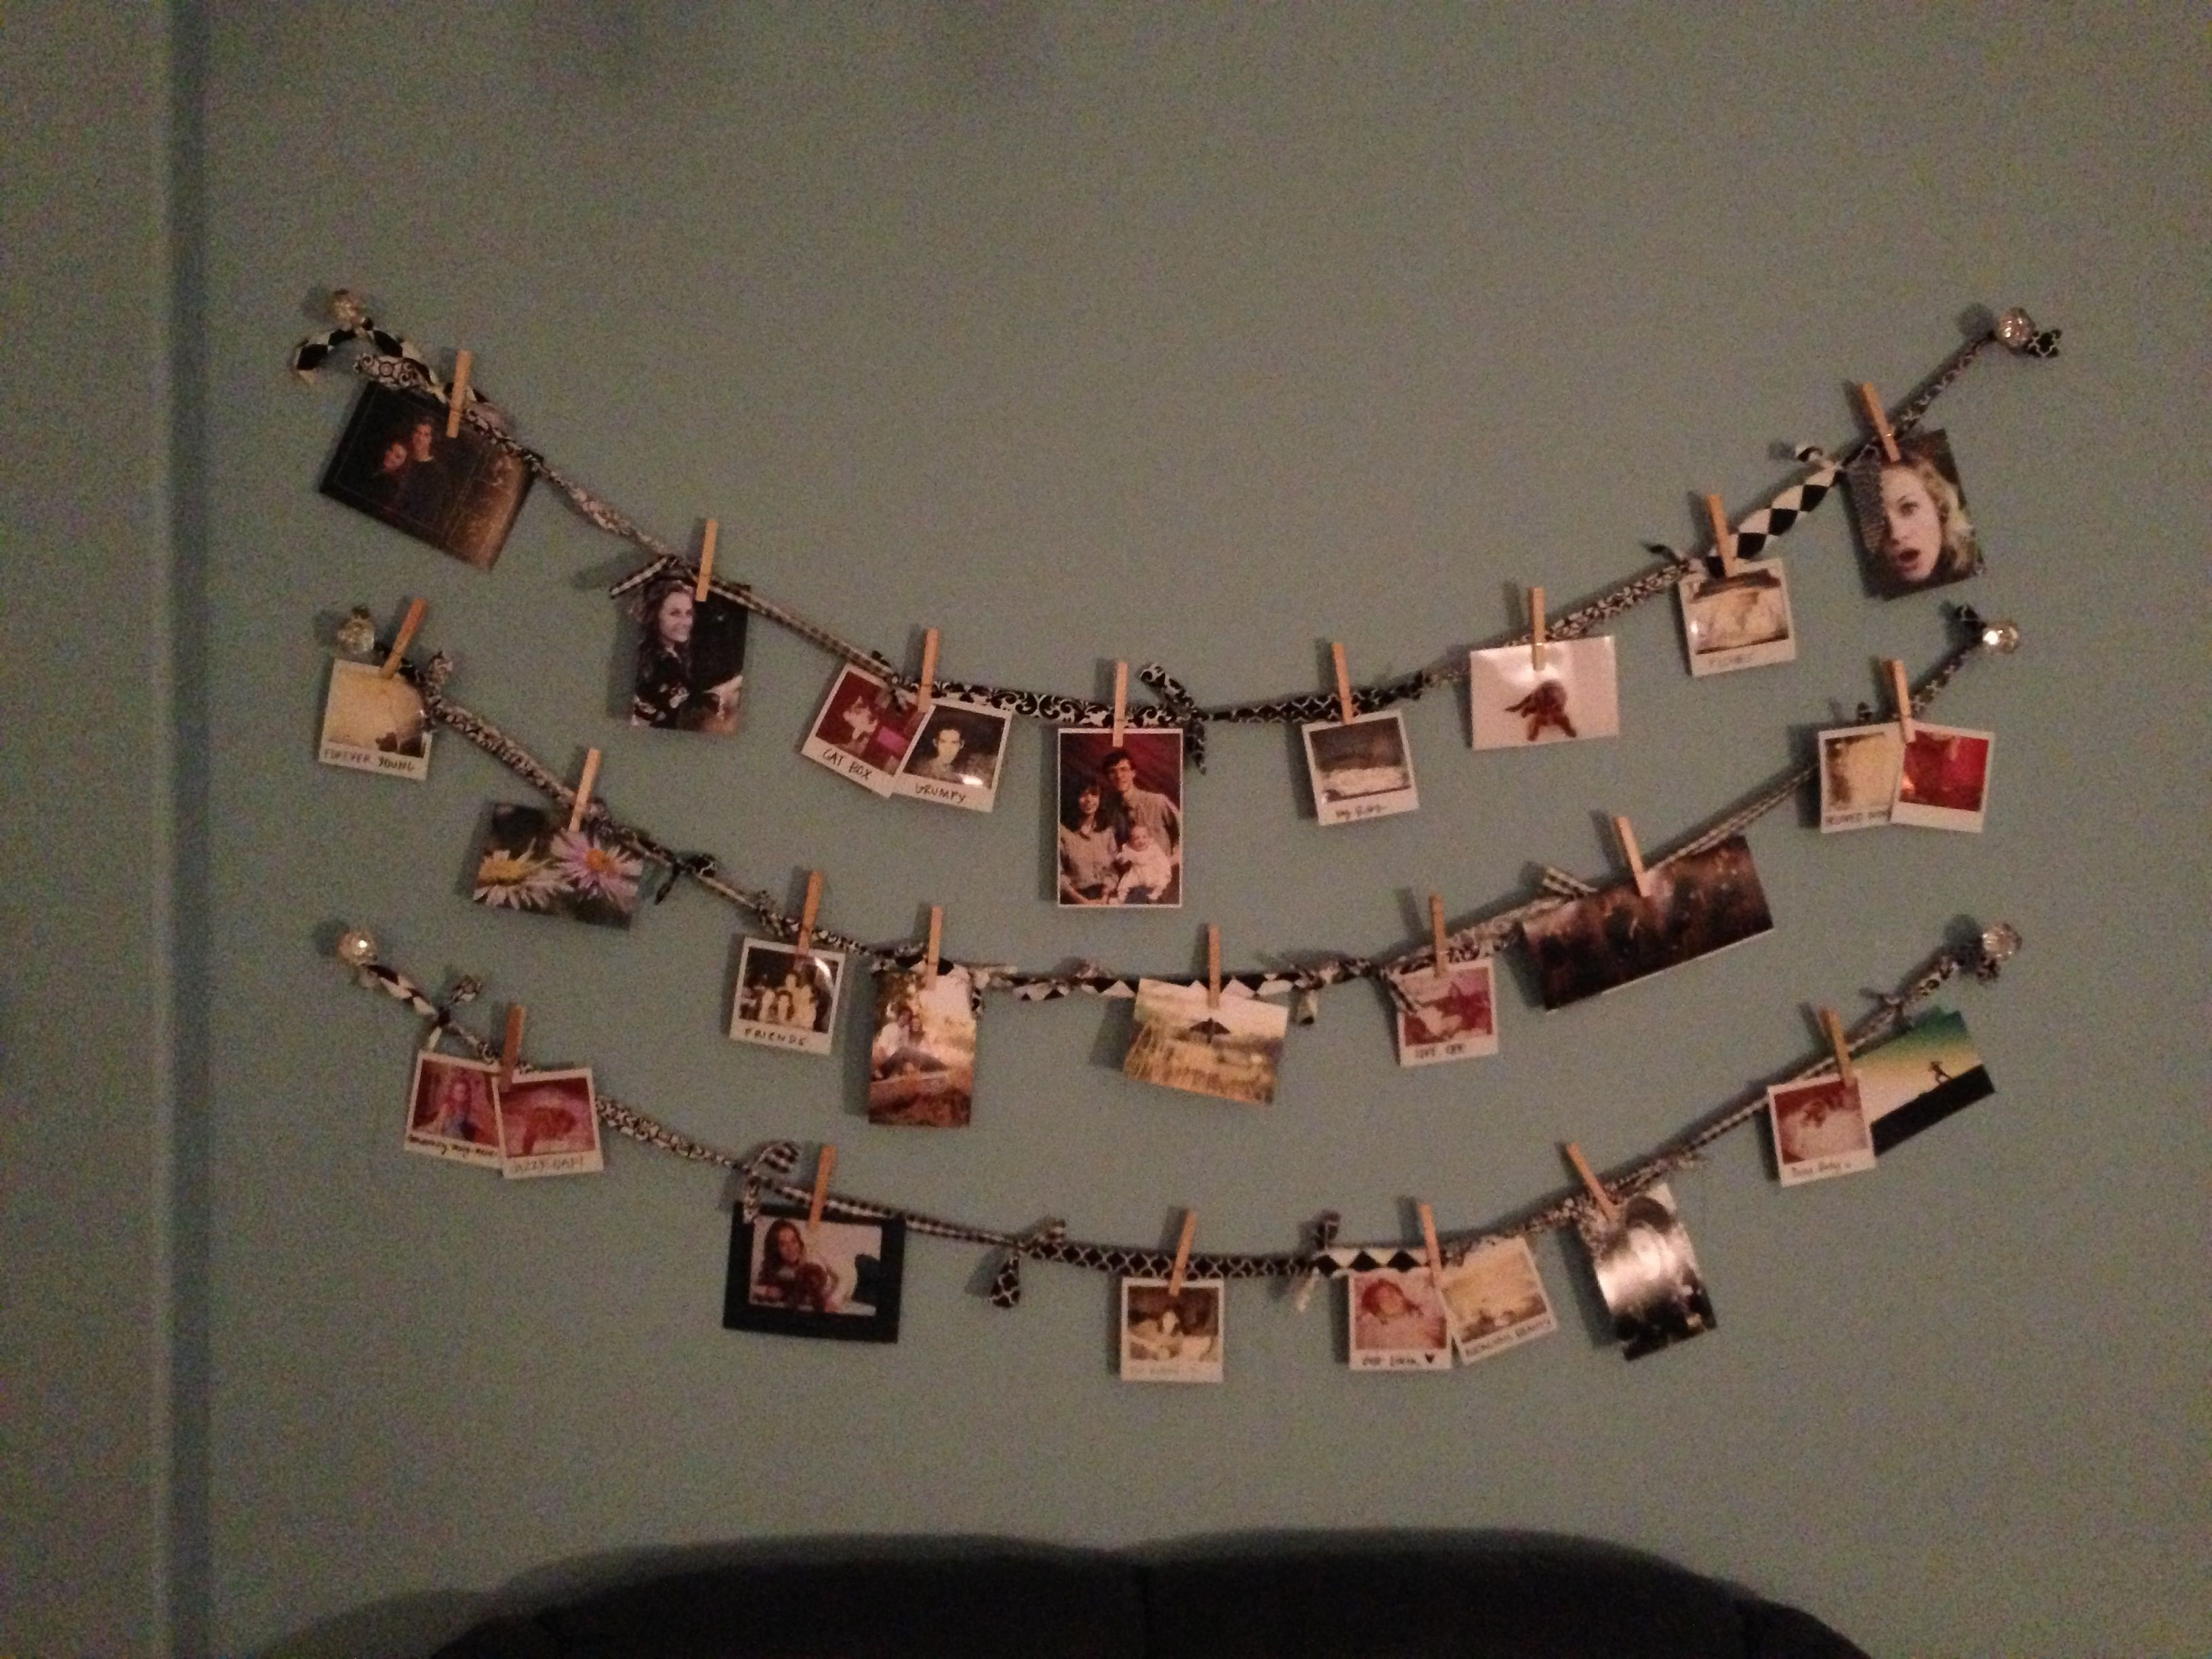 A Cute And Simple Way To Hang Photos Without Frames Or Tape 1 Decorative Doors Connected By Tied Ripped Fabric 2 Clothes Pins